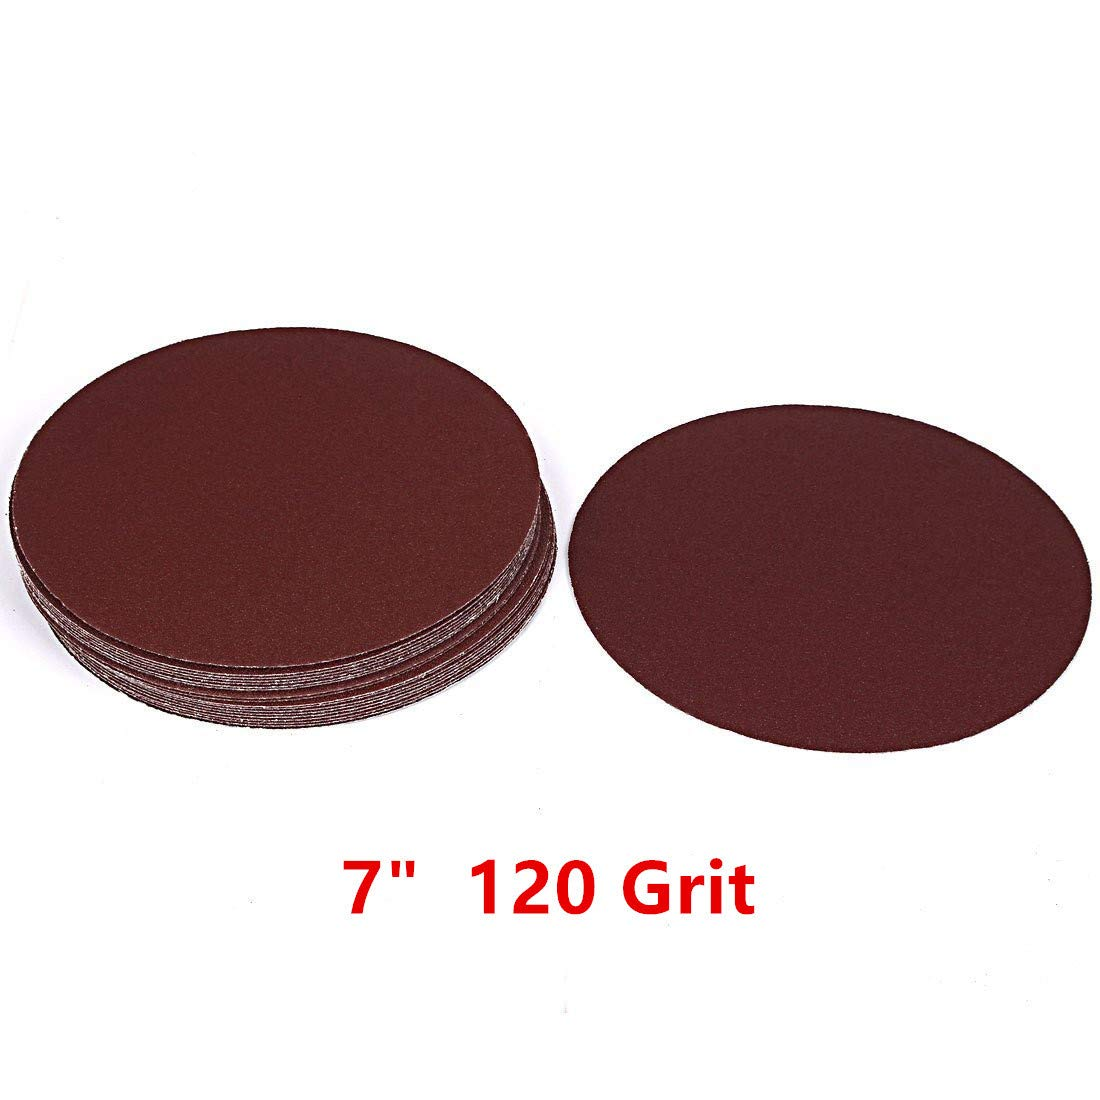 Adiyer [20 Pack] 7-inch 120 Grit Hook and Loop Sanding Discs Sandpaper, Aluminum Oxide Abrasive